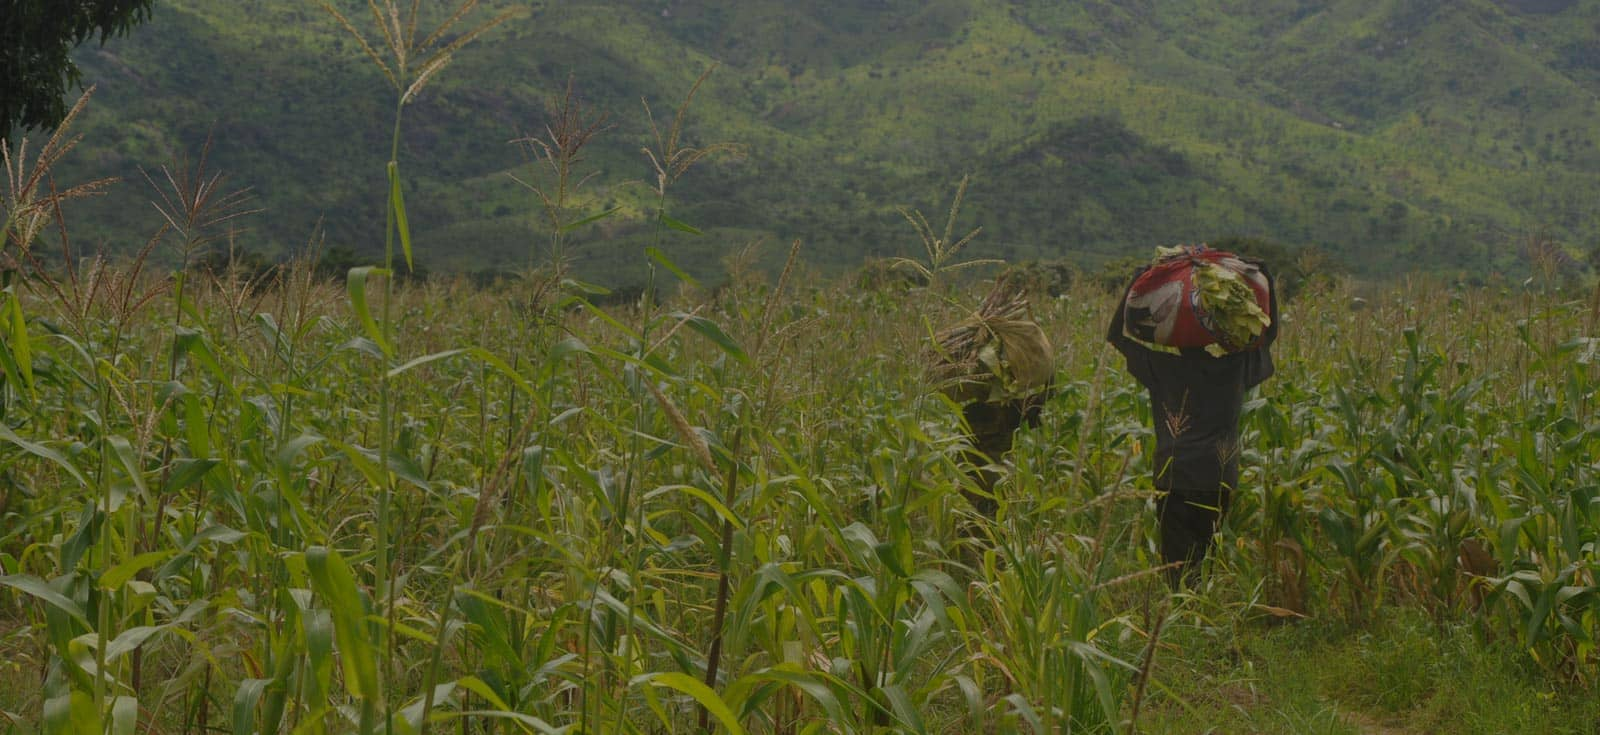 Iita S Drought Resilient Maize Takes Pressure Off African